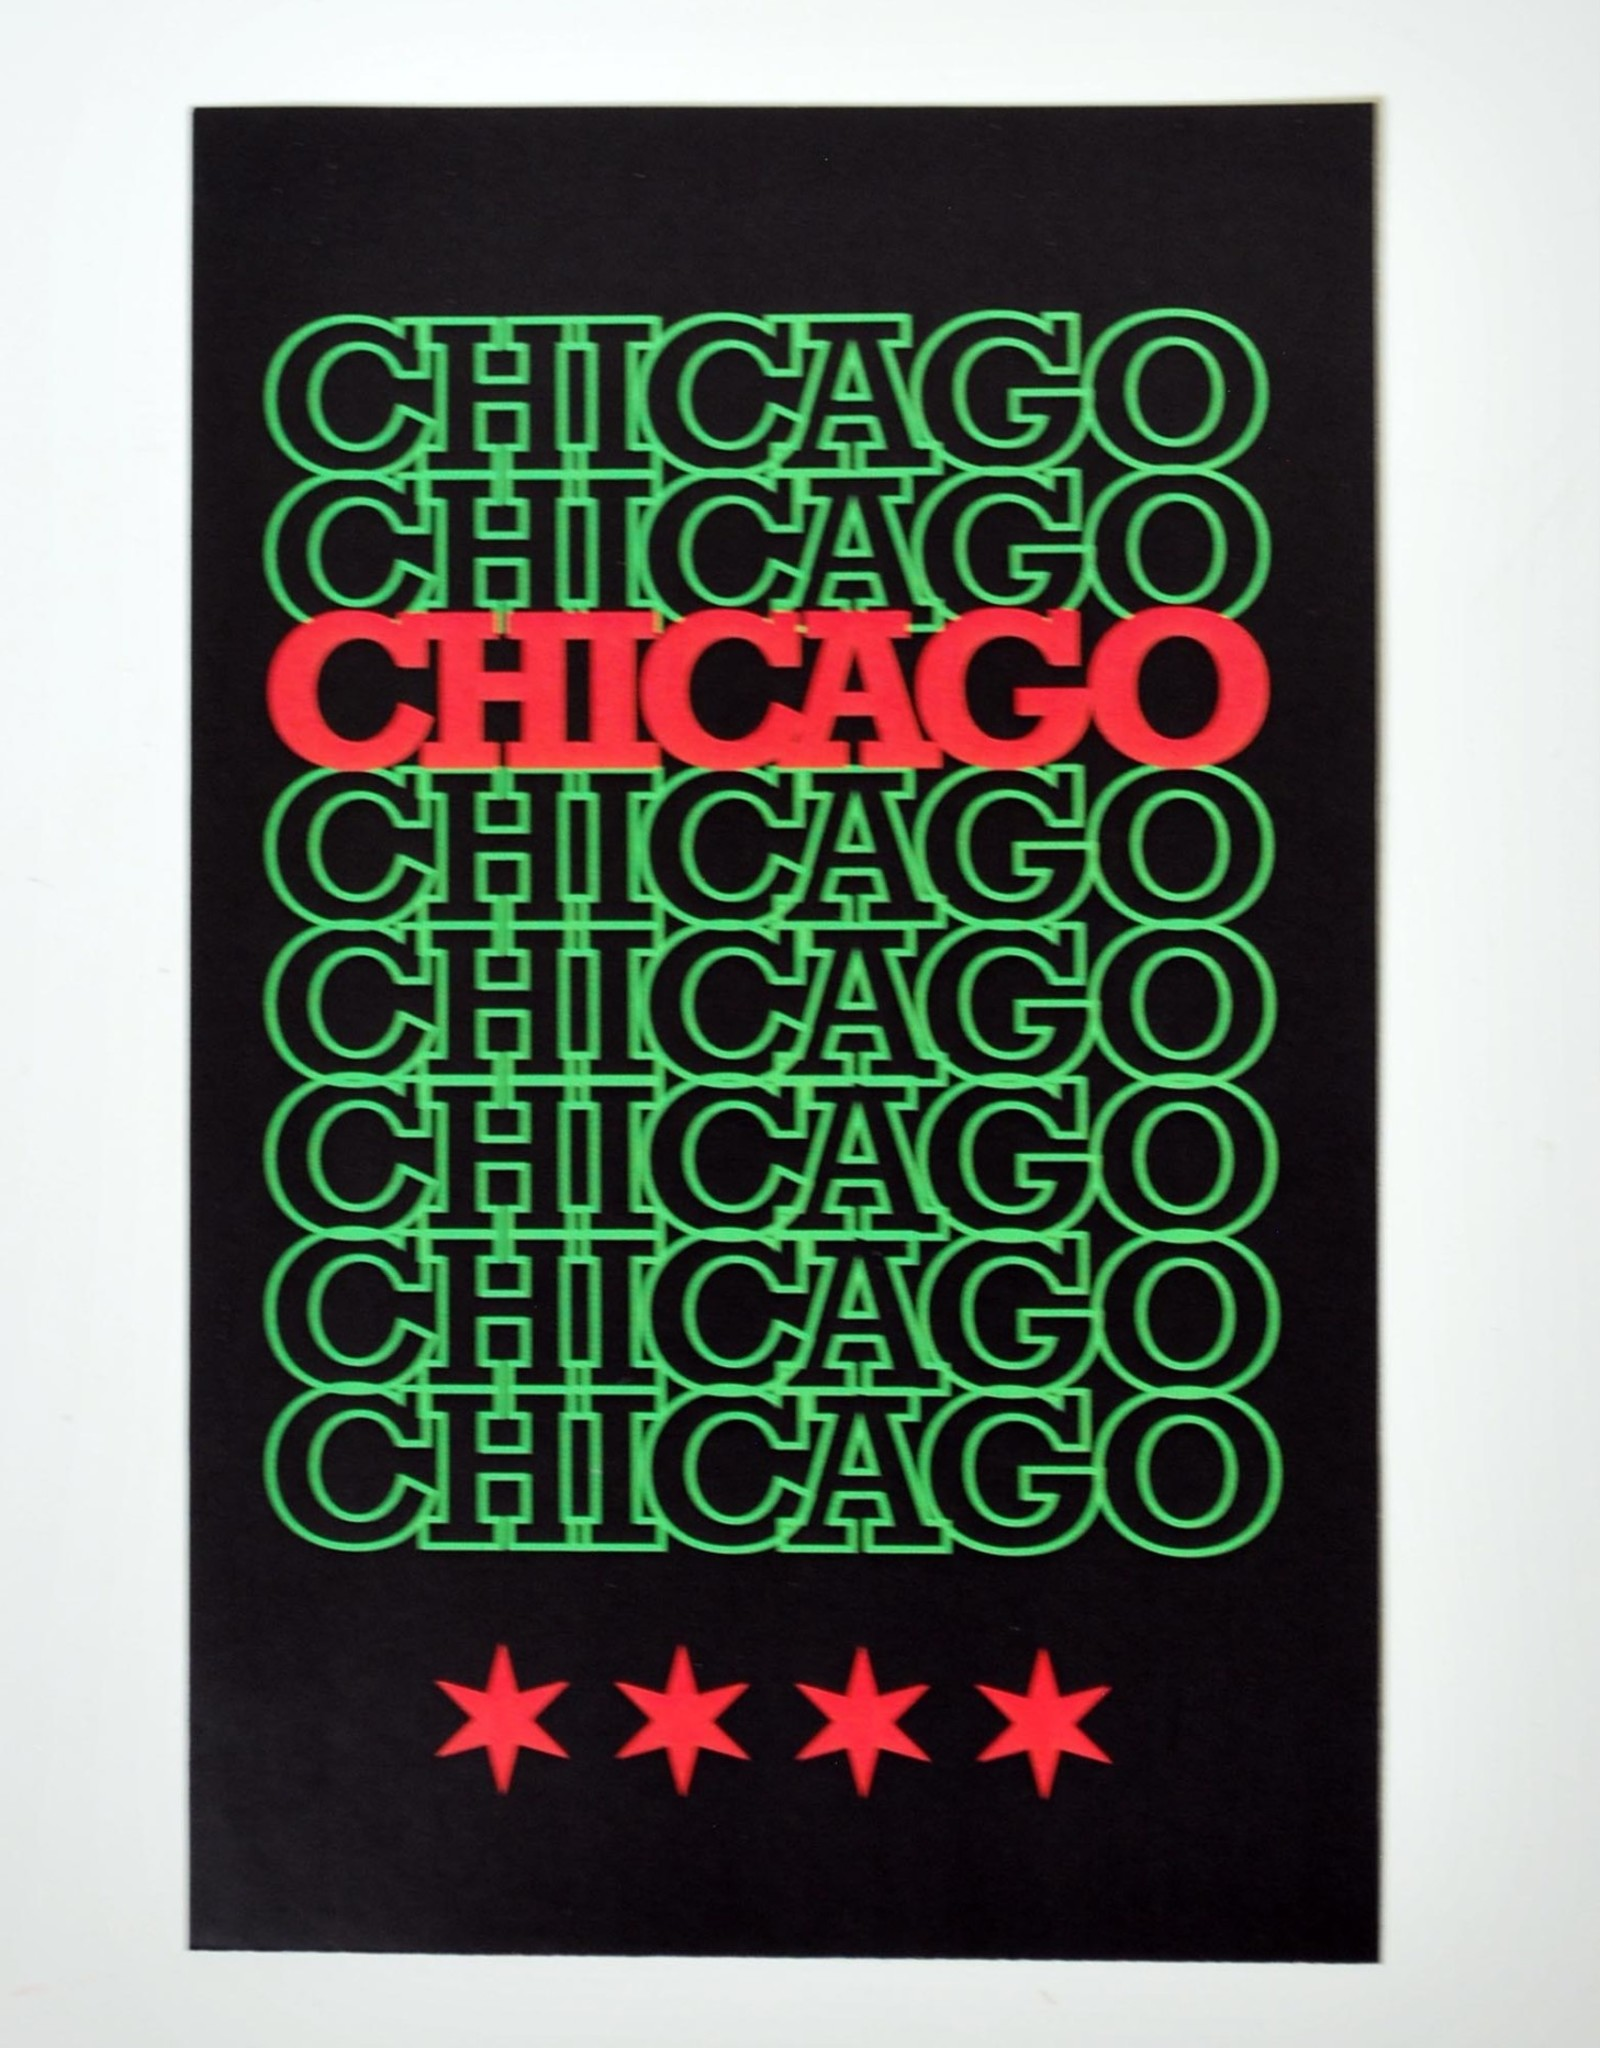 Knight Illustrations Corvus Press: Chicago Pan Recyclable Sticker by David Knight